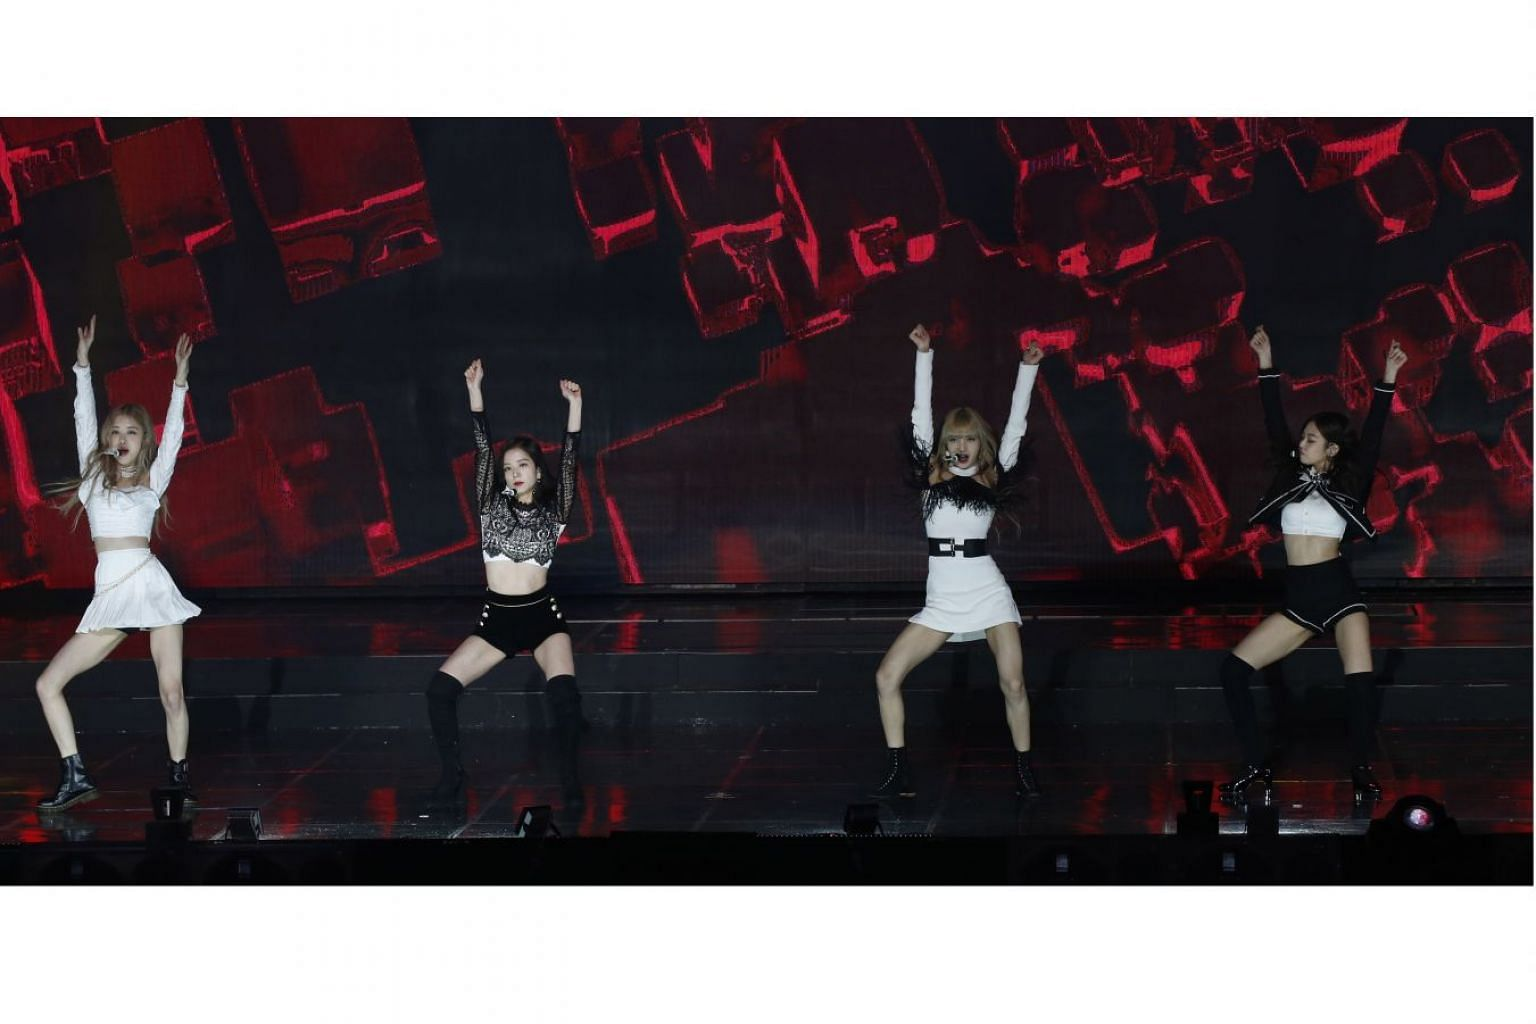 Live Nation Entertainment and One Production are bringing K-pop girl group Blackpink, seen here at the Gaon Chart Music Awards in Seoul last week, to Singapore for their debut show here next month.